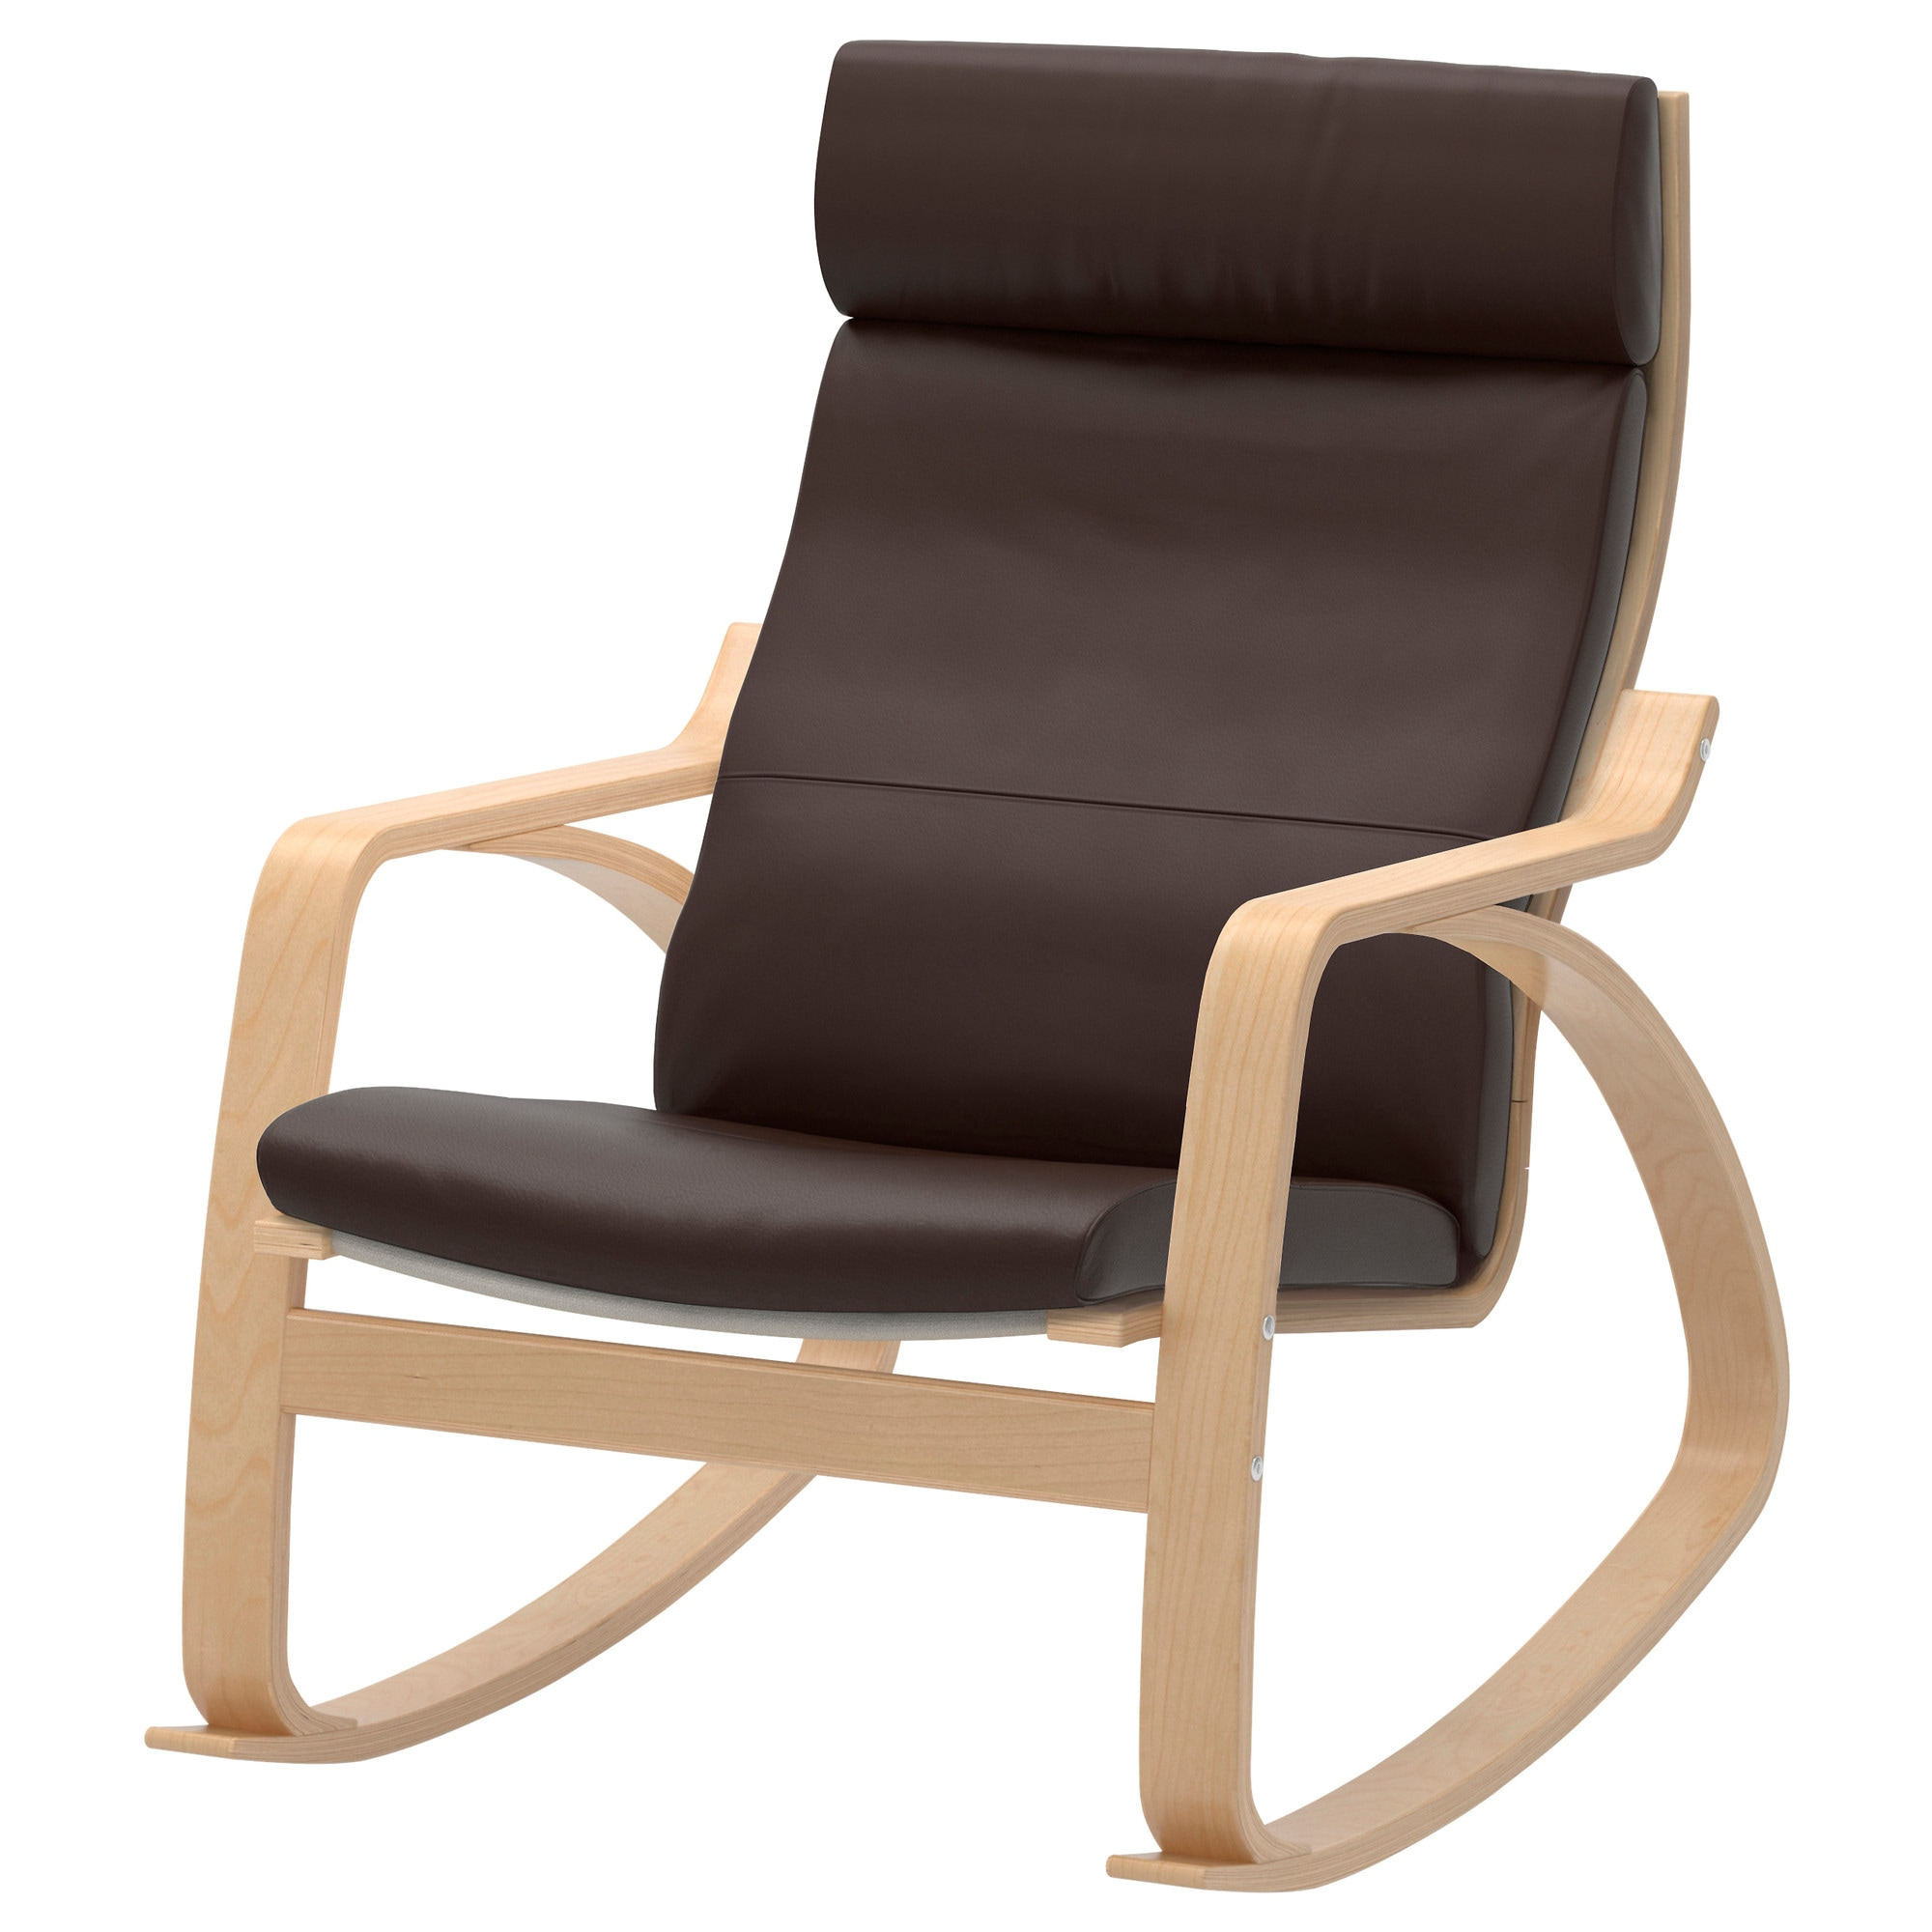 Ikea lillberg rocking chair - Ikea Lillberg Rocking Chair 12